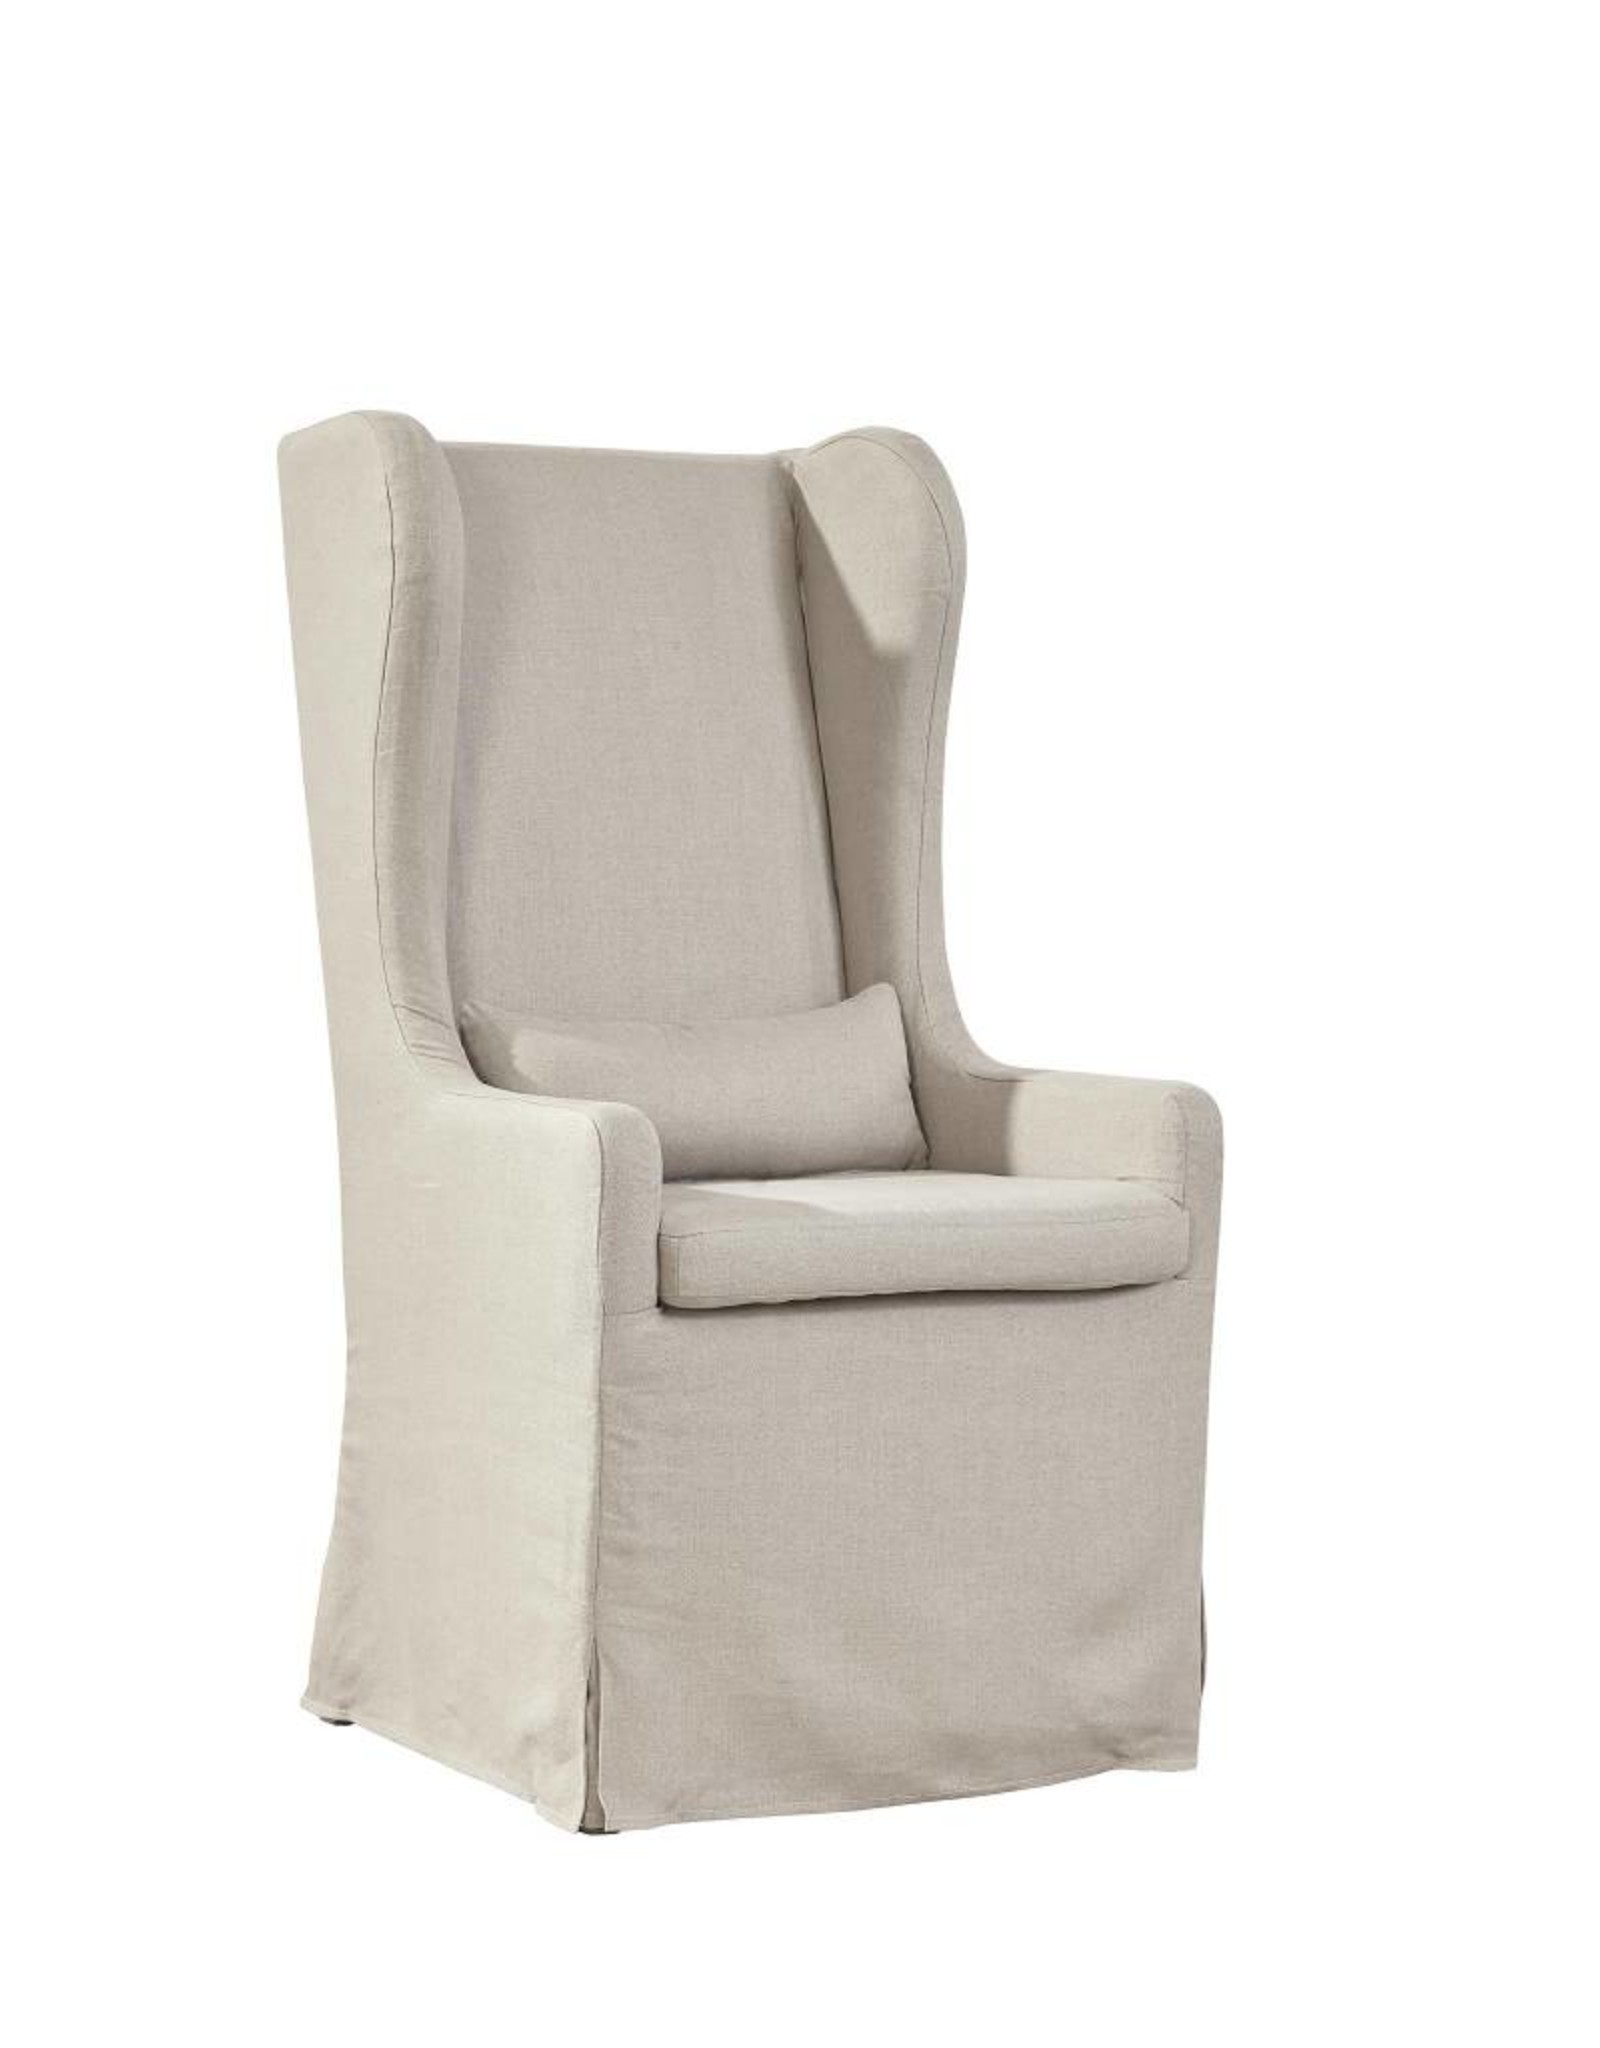 Furniture Classics Highback Linen Host Chair w/small pillow